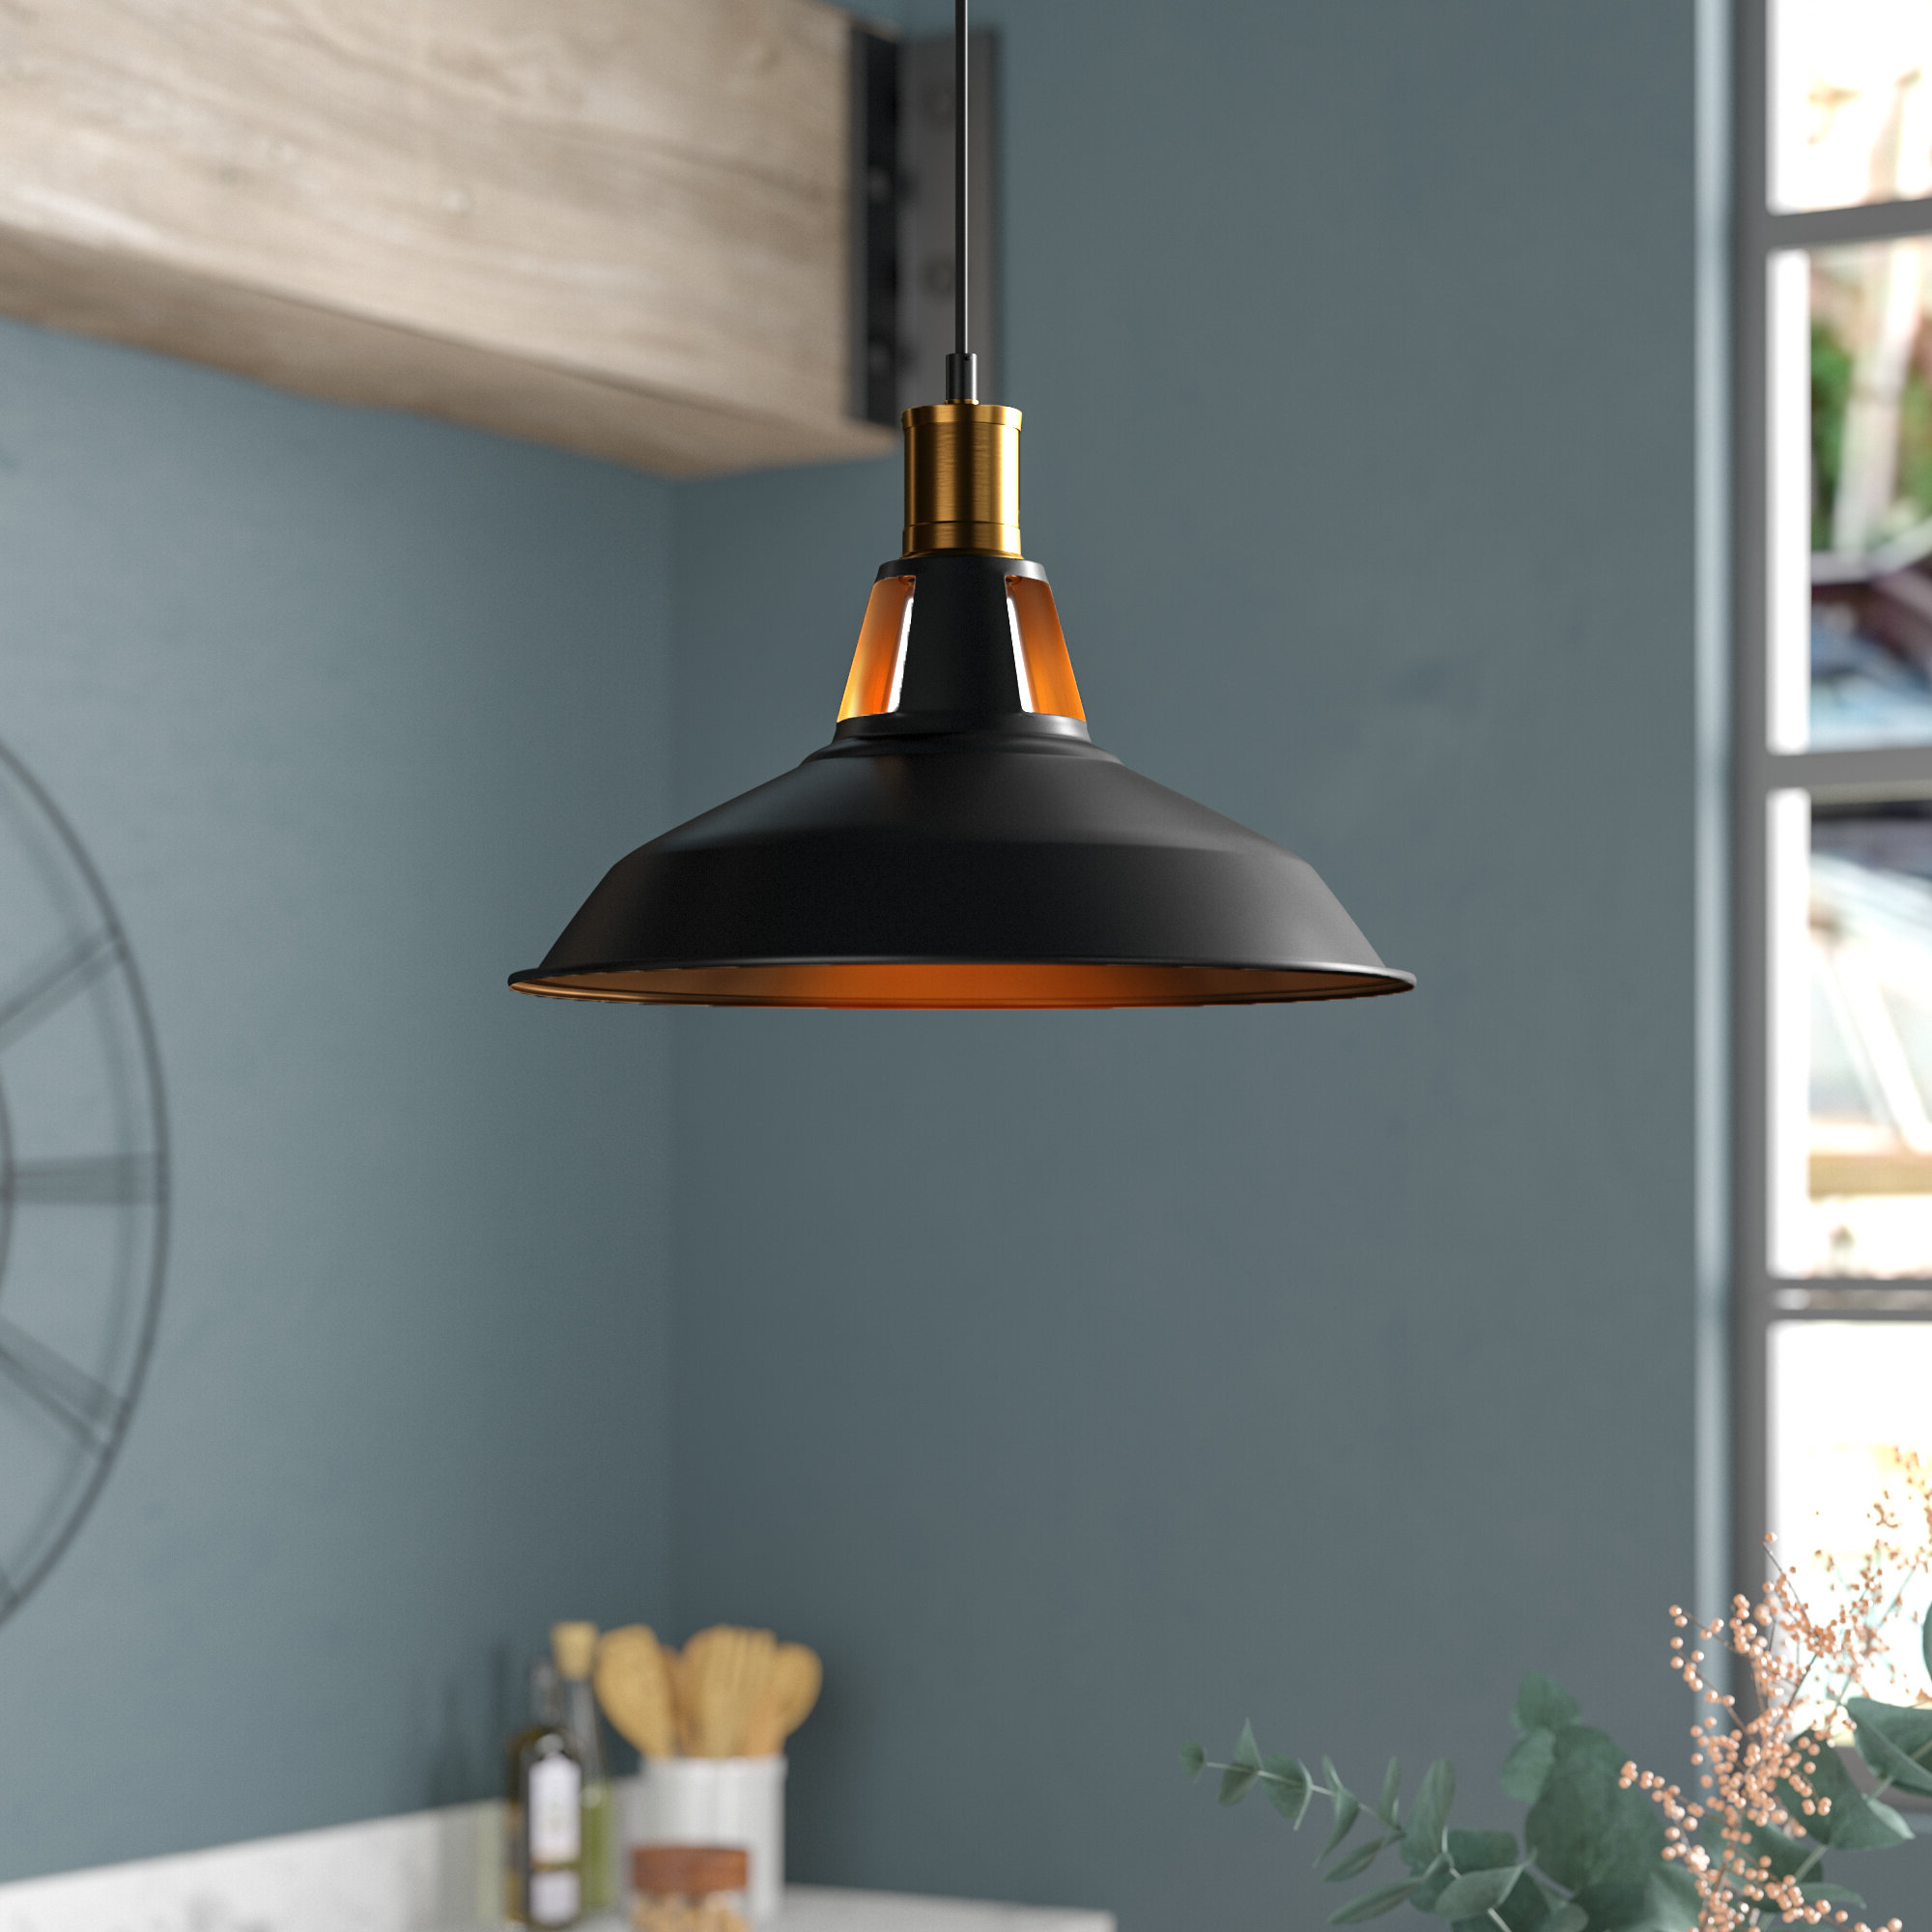 Popular Newhaven 1 Light Led Dome Pendant Pertaining To Gattis 1 Light Dome Pendants (View 15 of 25)